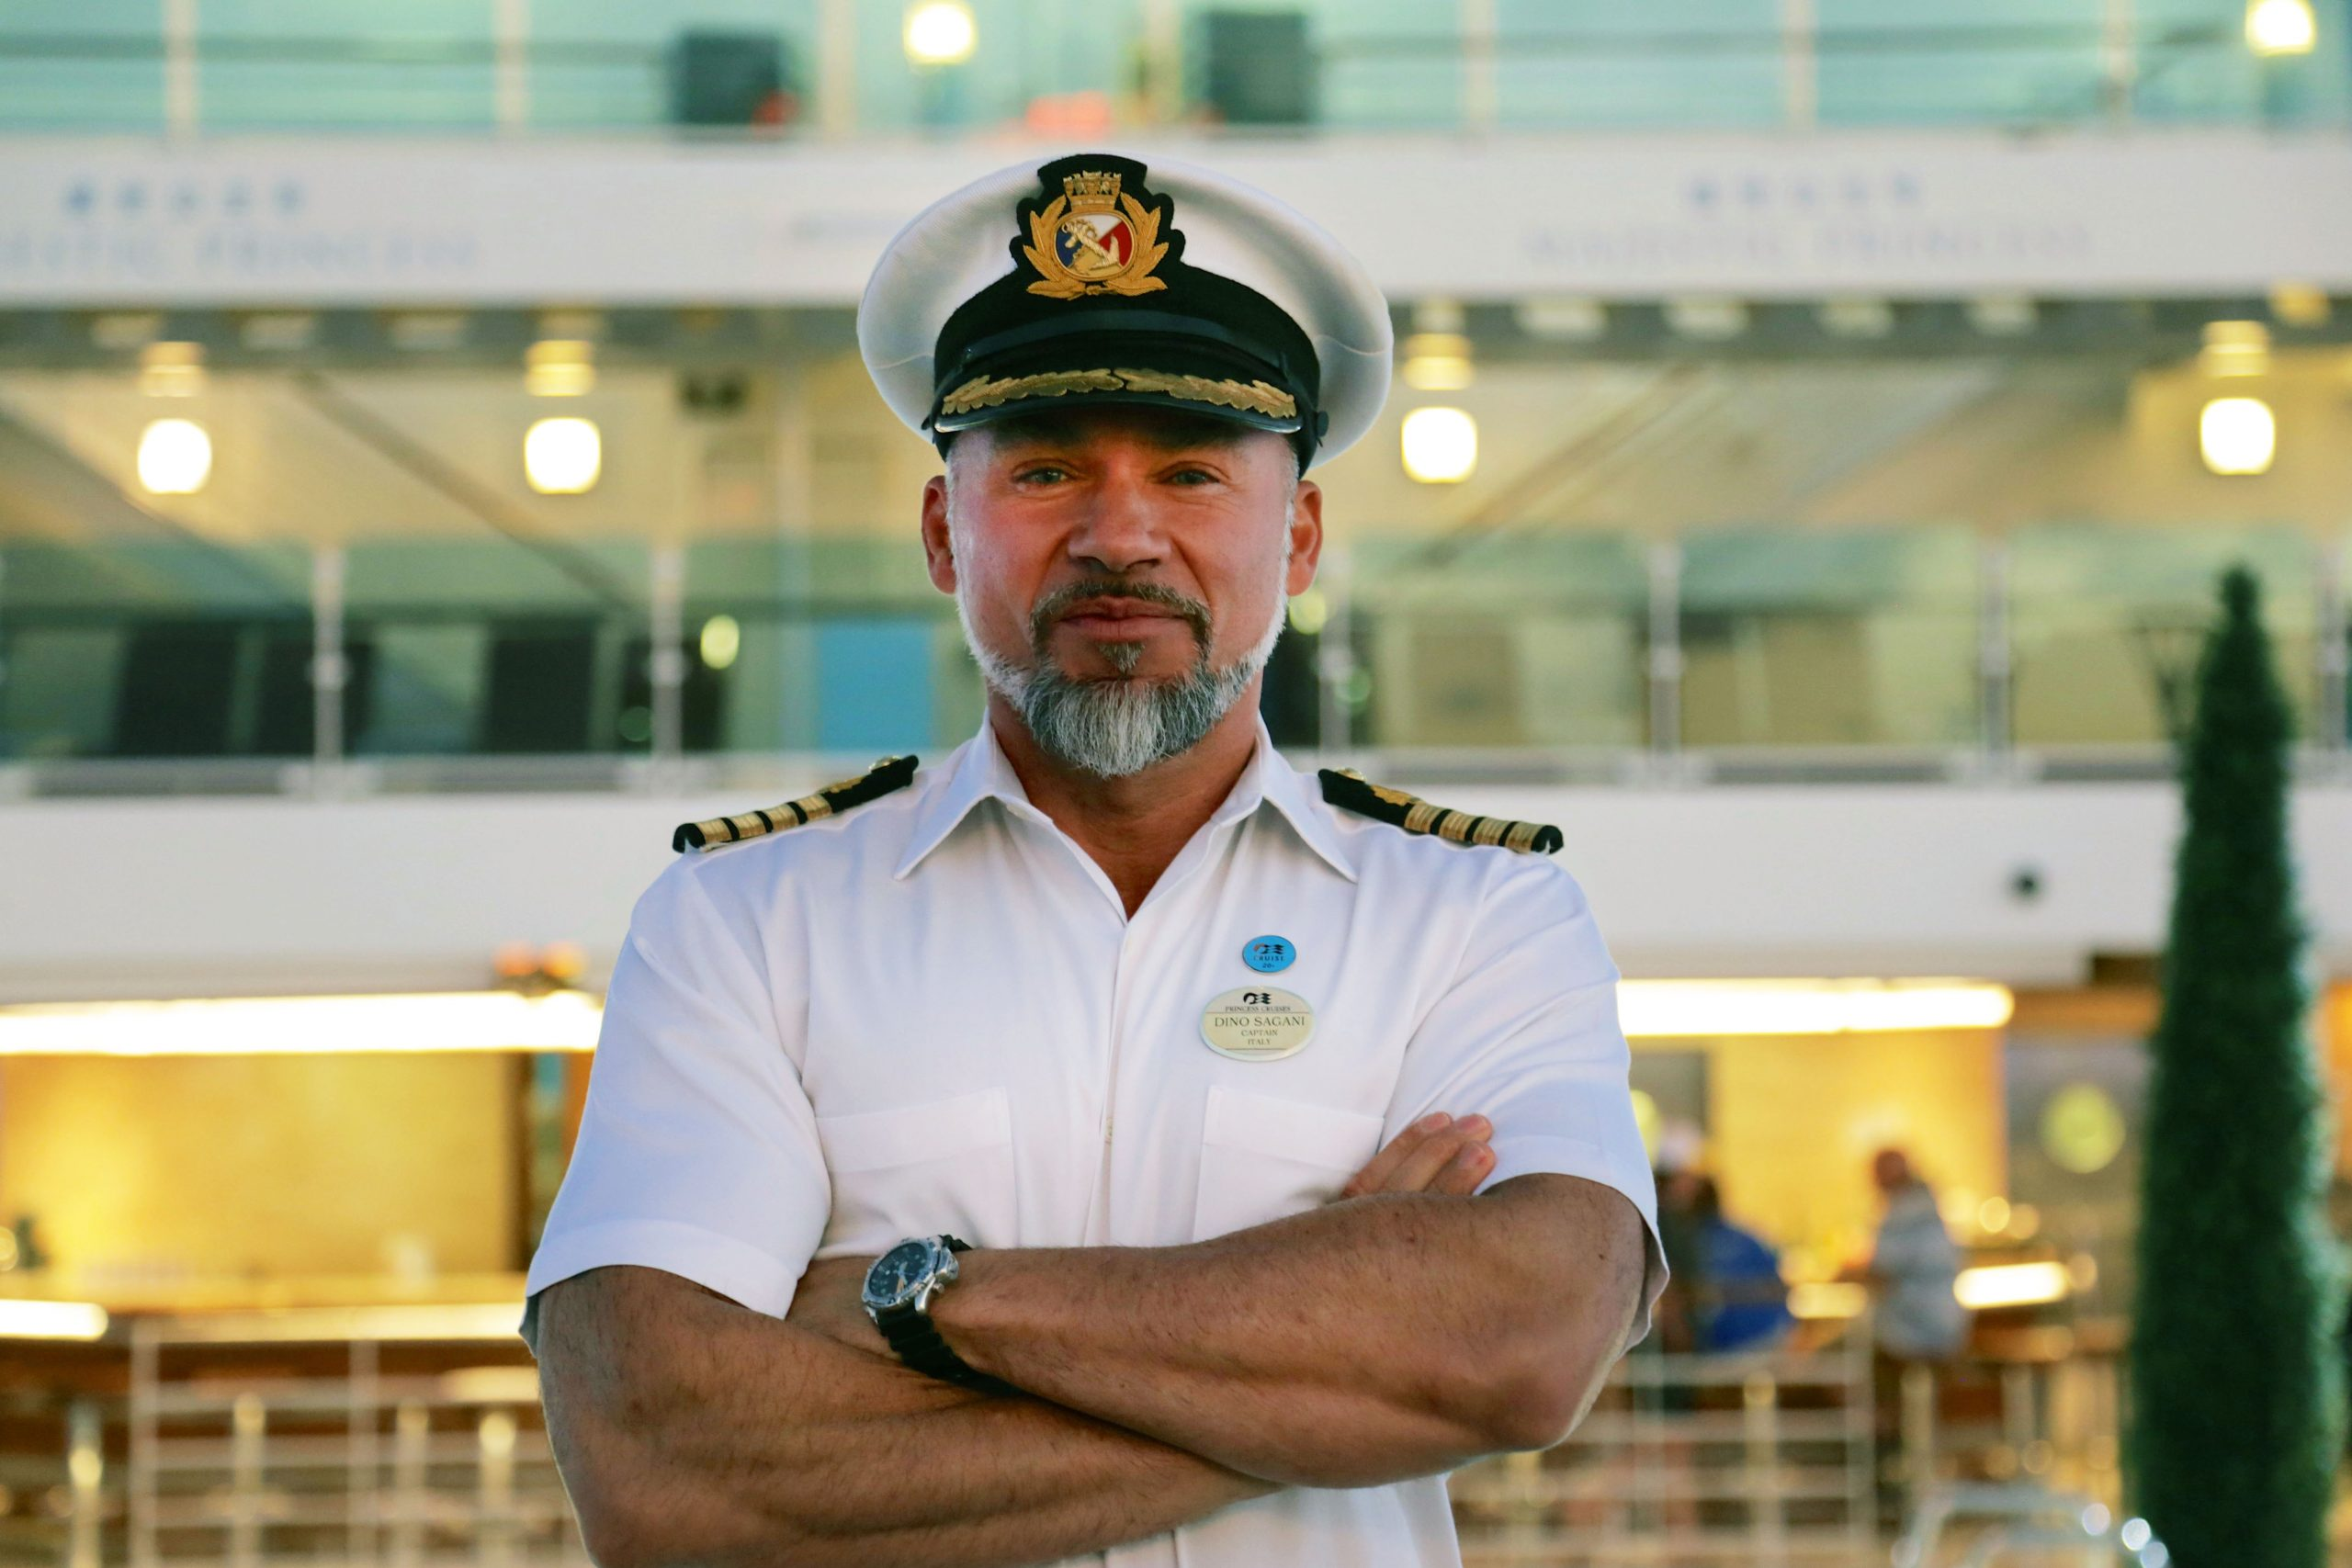 The Cruise captain